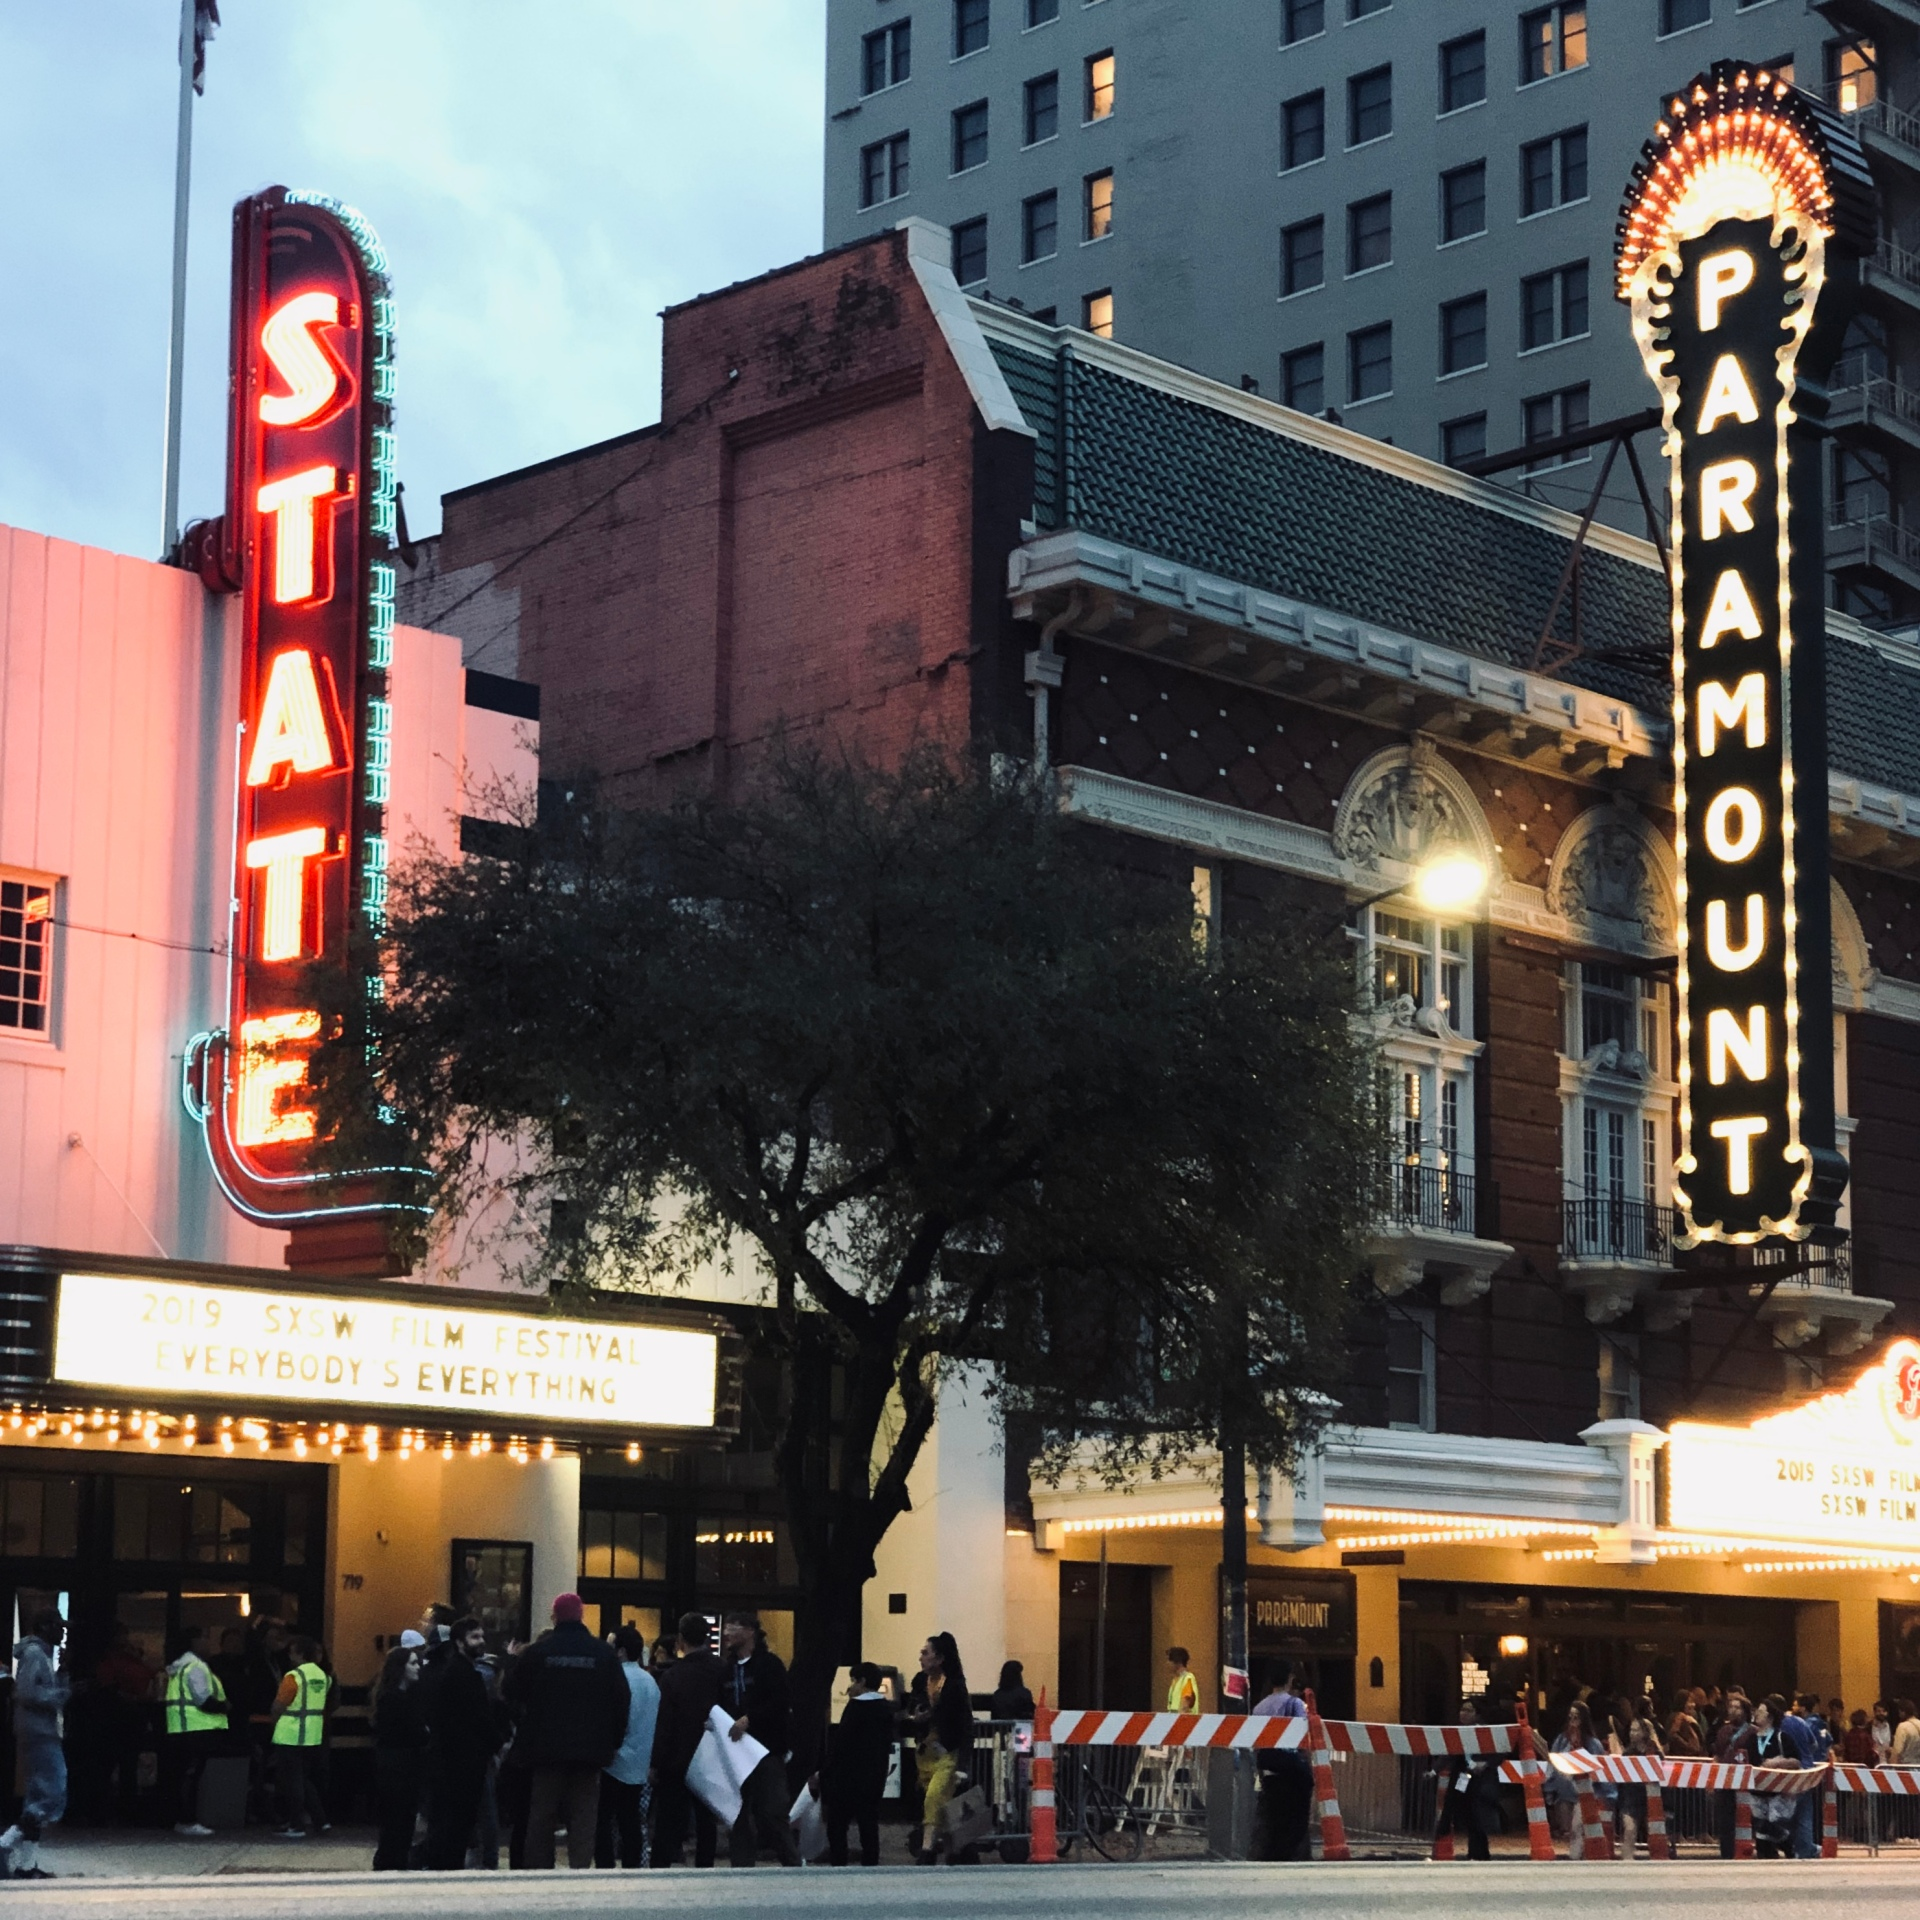 The Paramount Theater in Austin lit up at dusk.